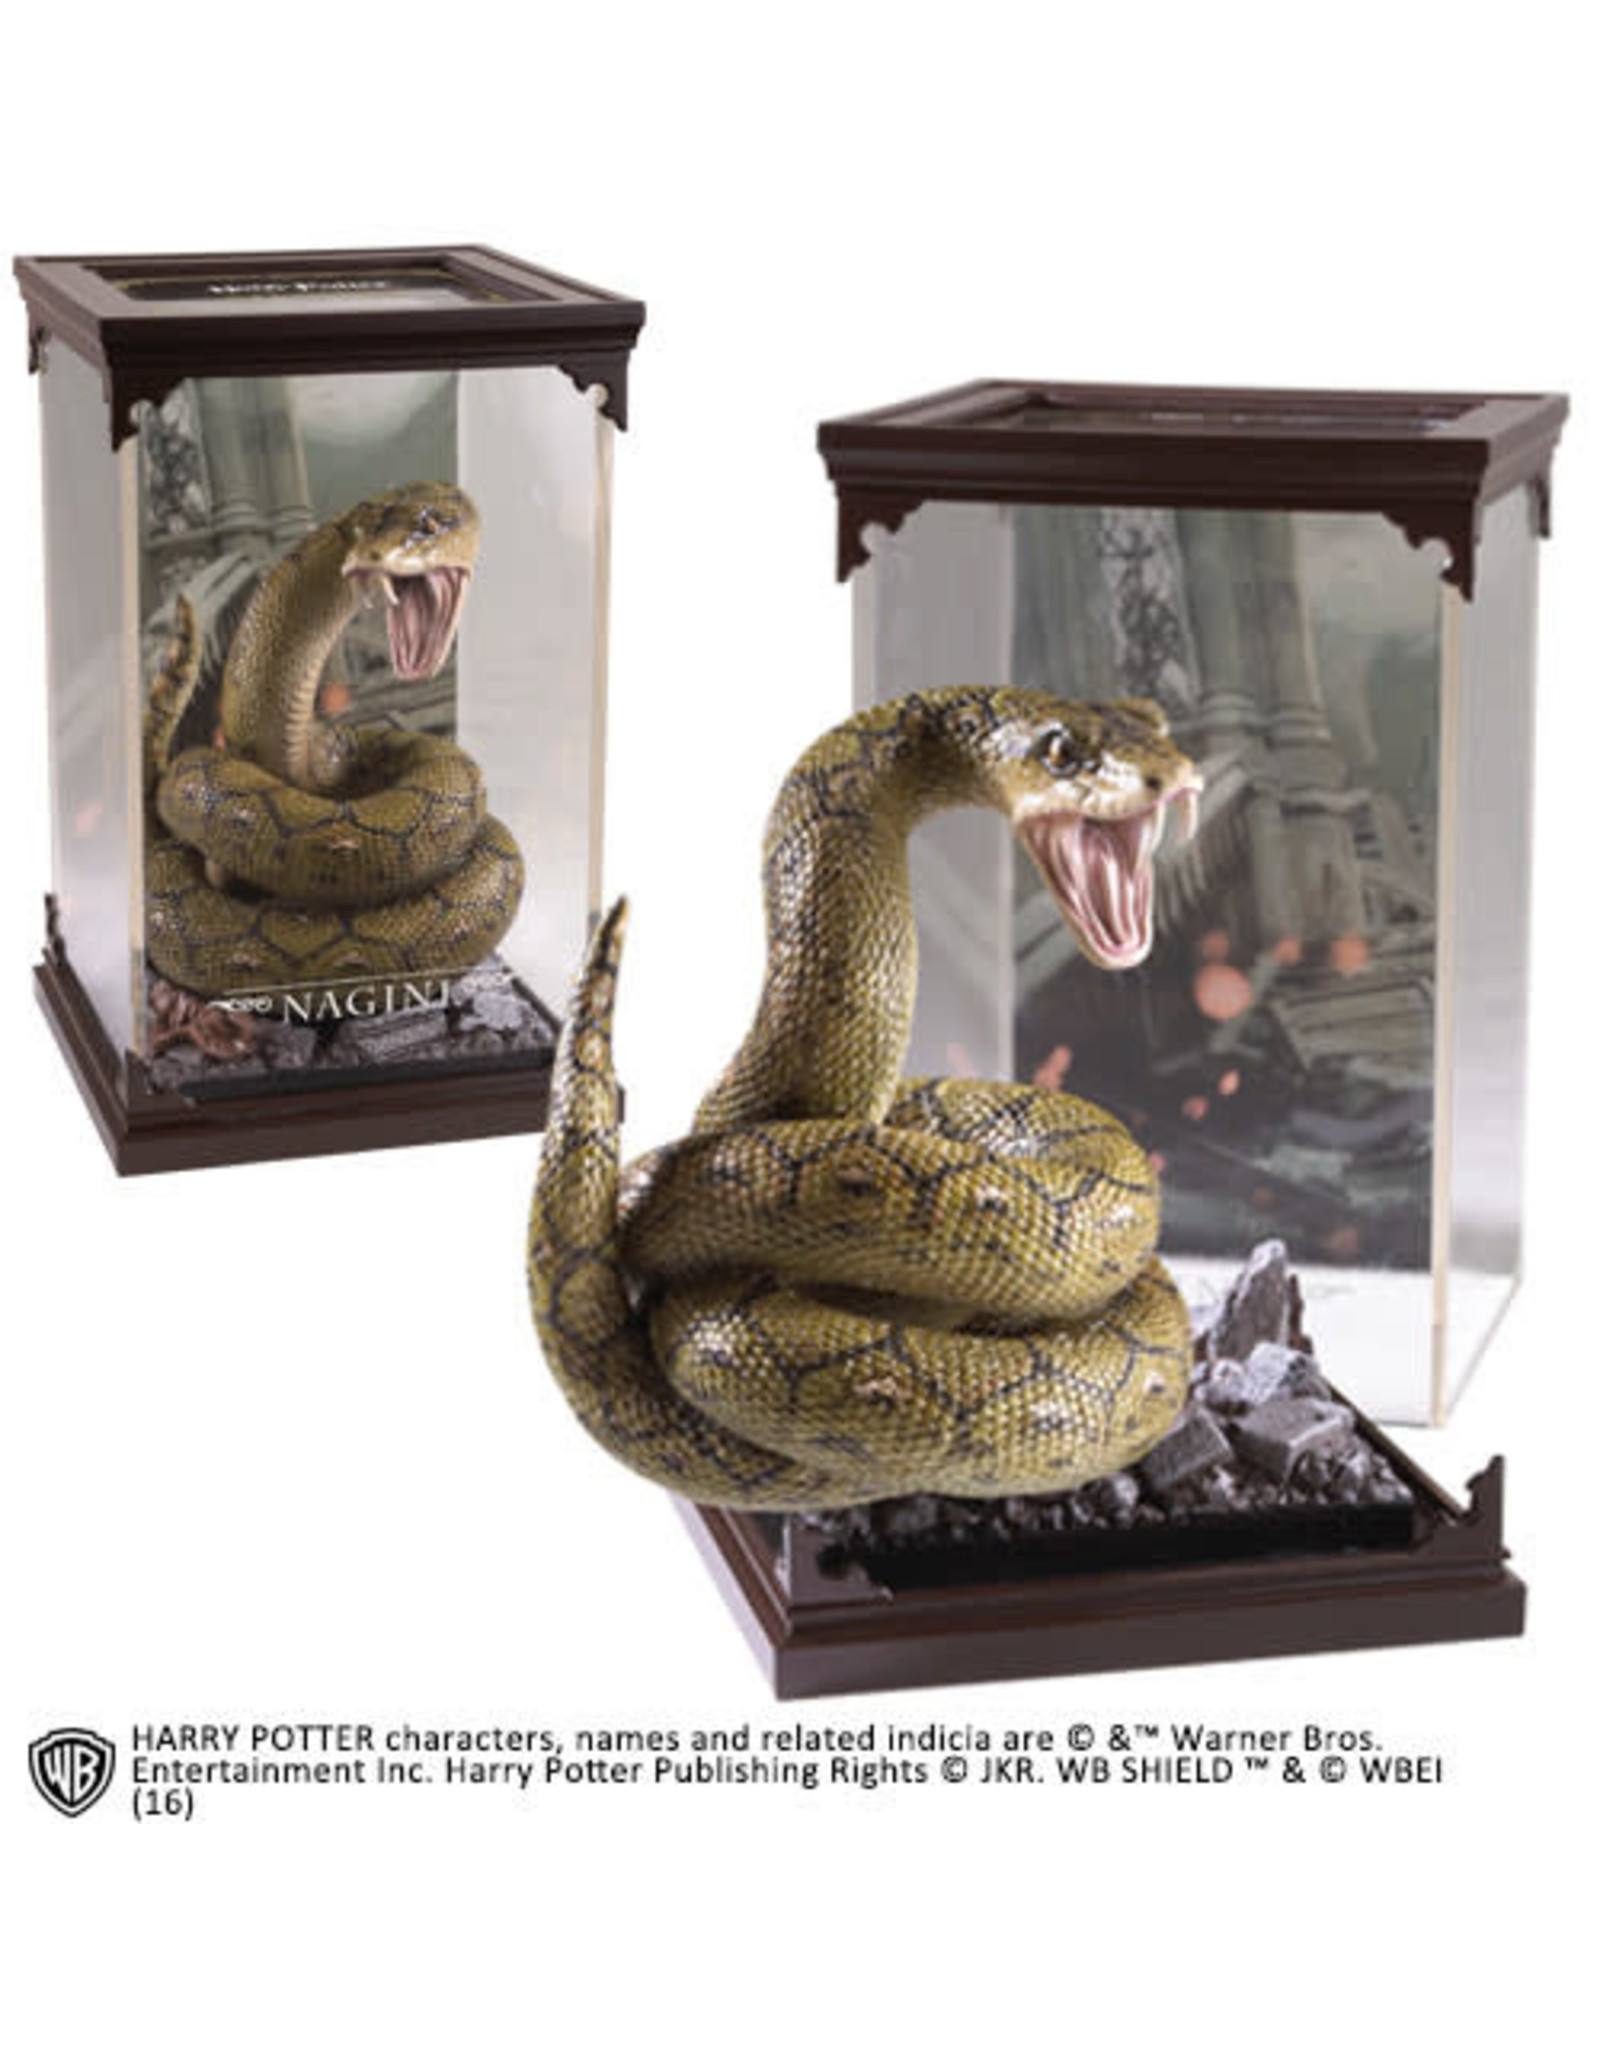 Noble Collection HARRY POTTER Magical Creatures Statue 09 - Nagini